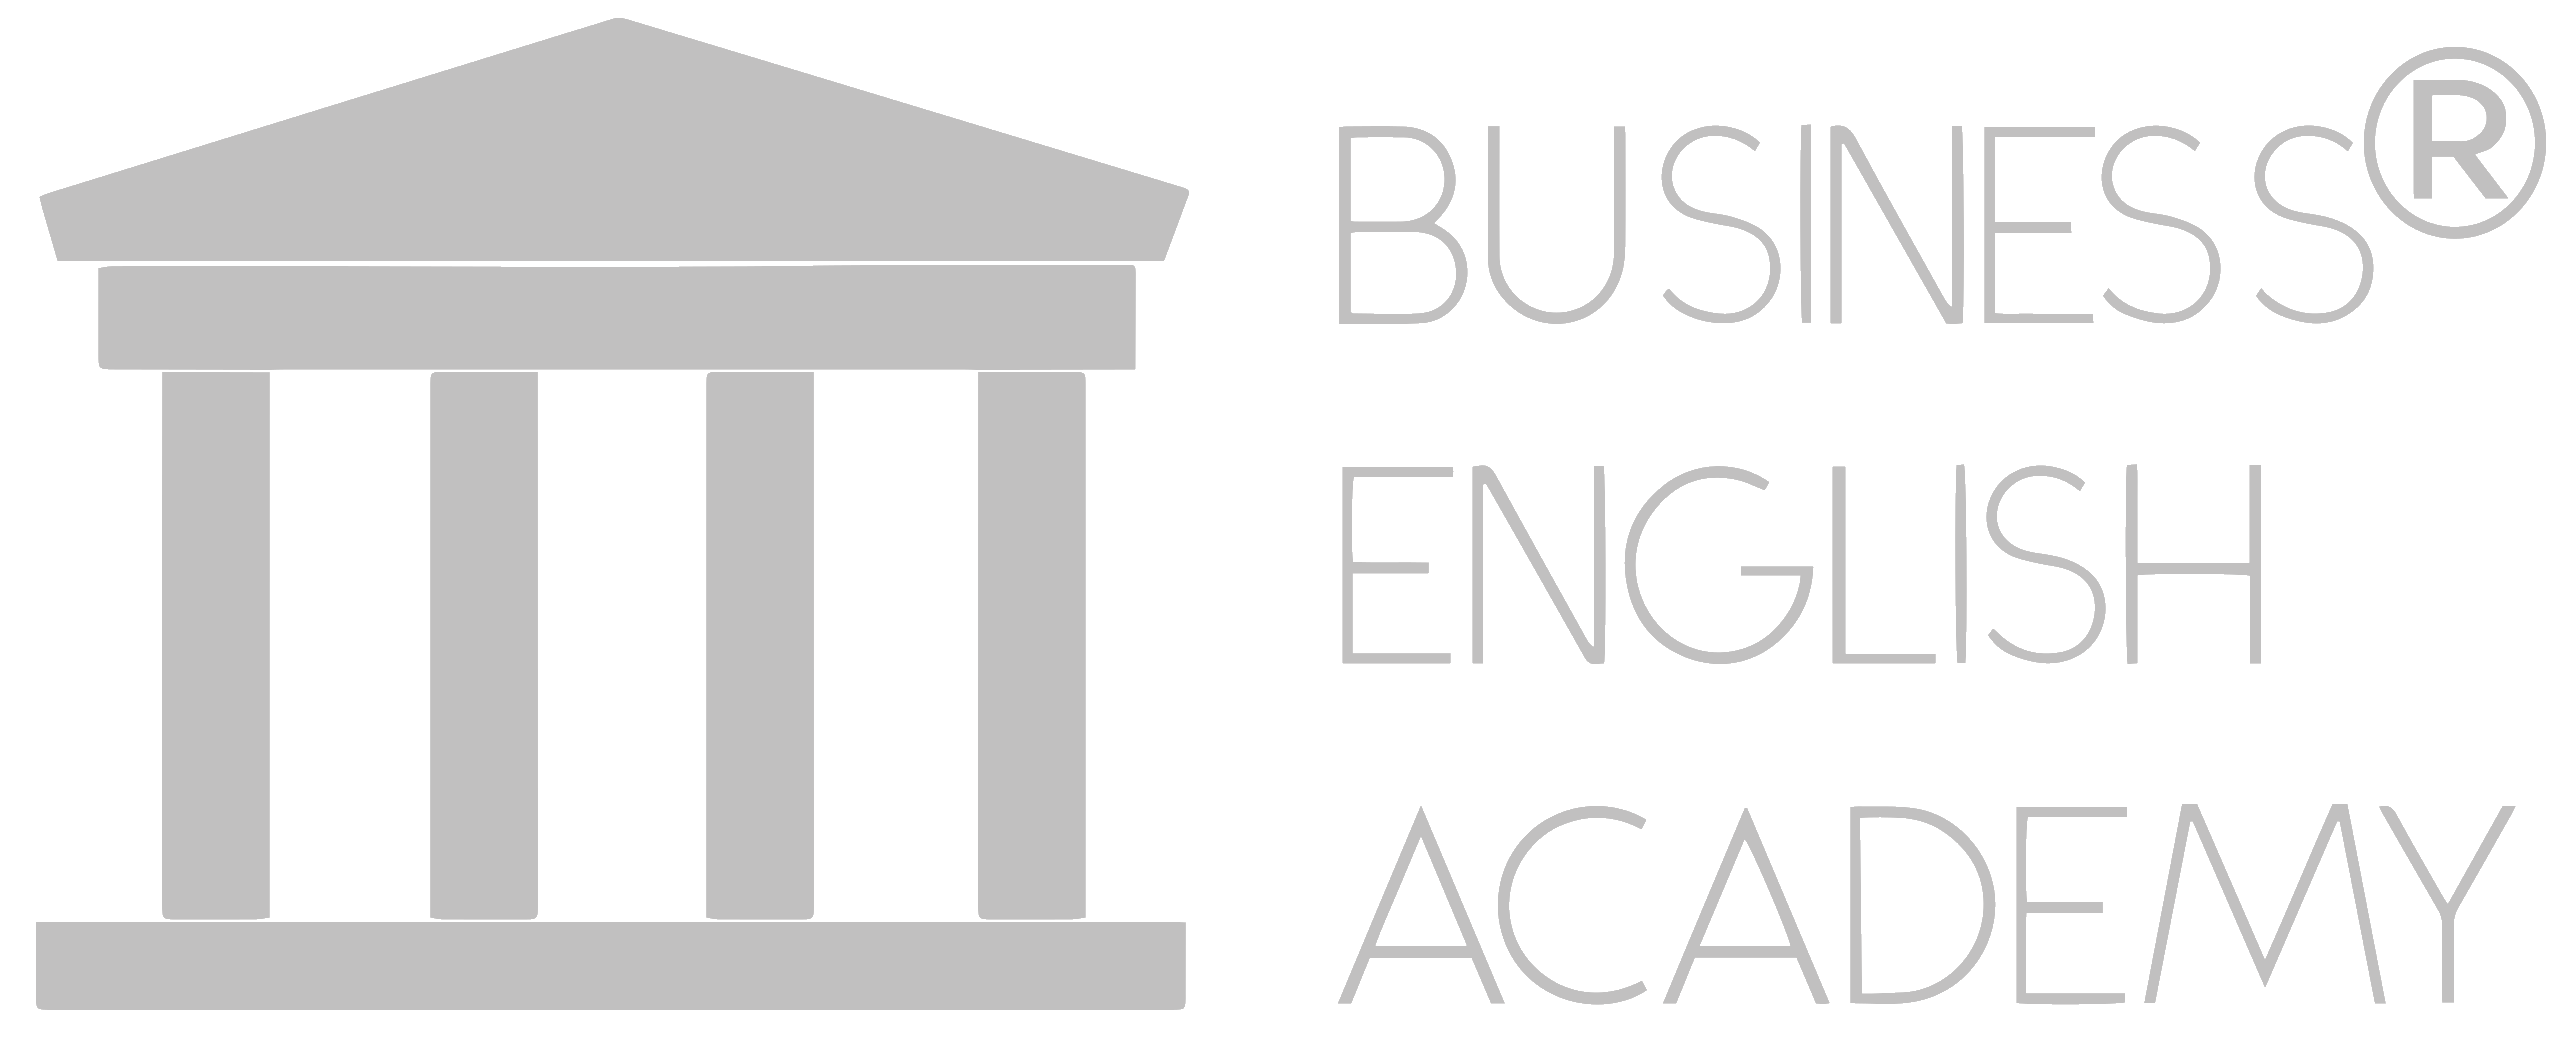 Business English Academy